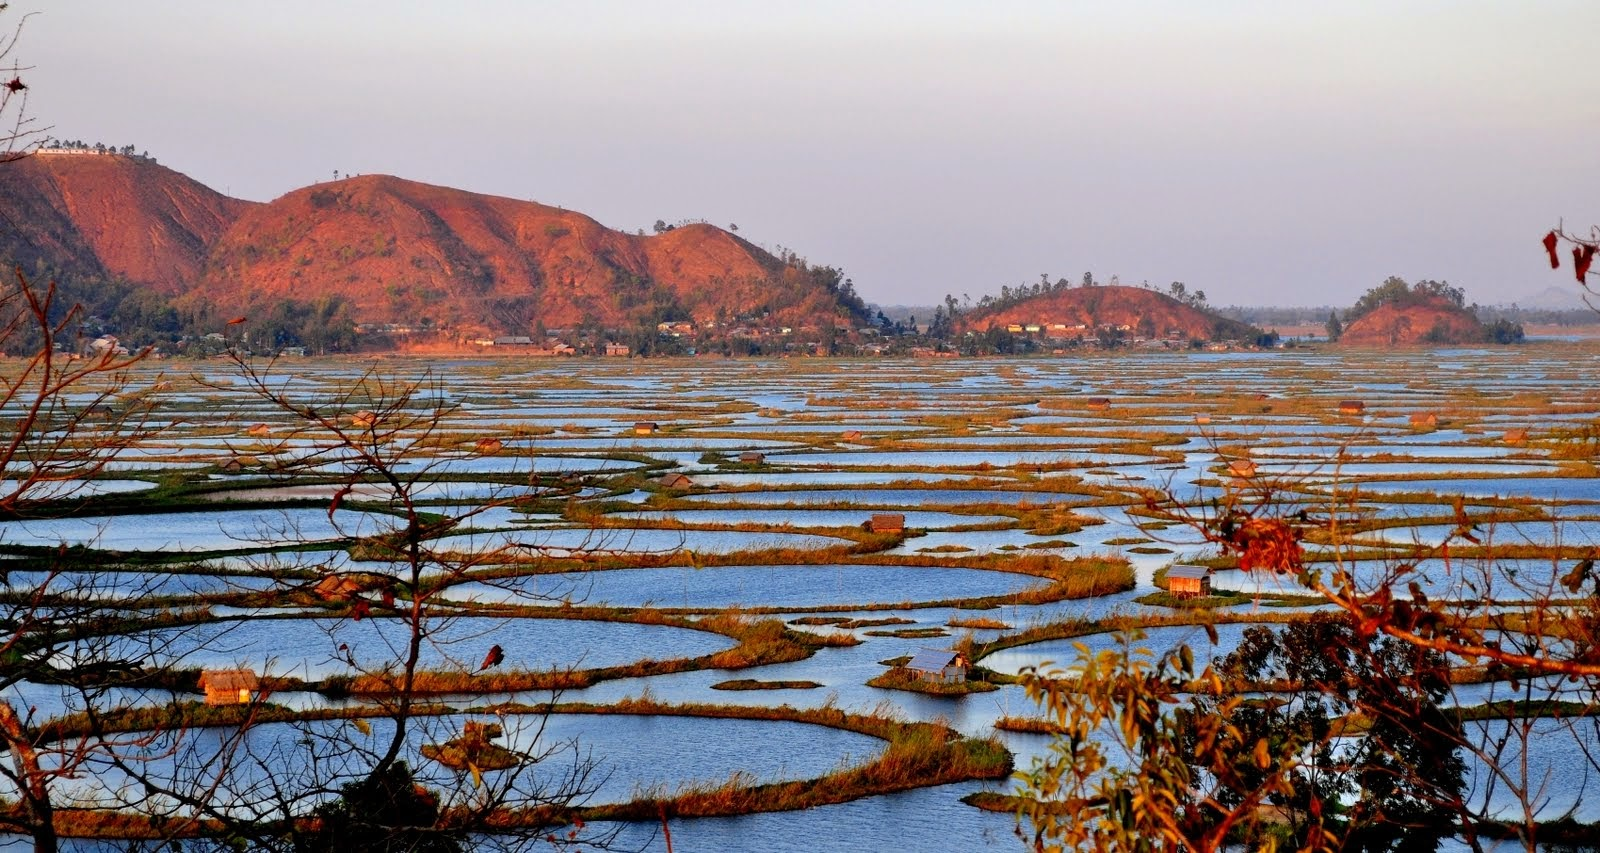 Keibul Lamjao on Loktak Lake, Manipur